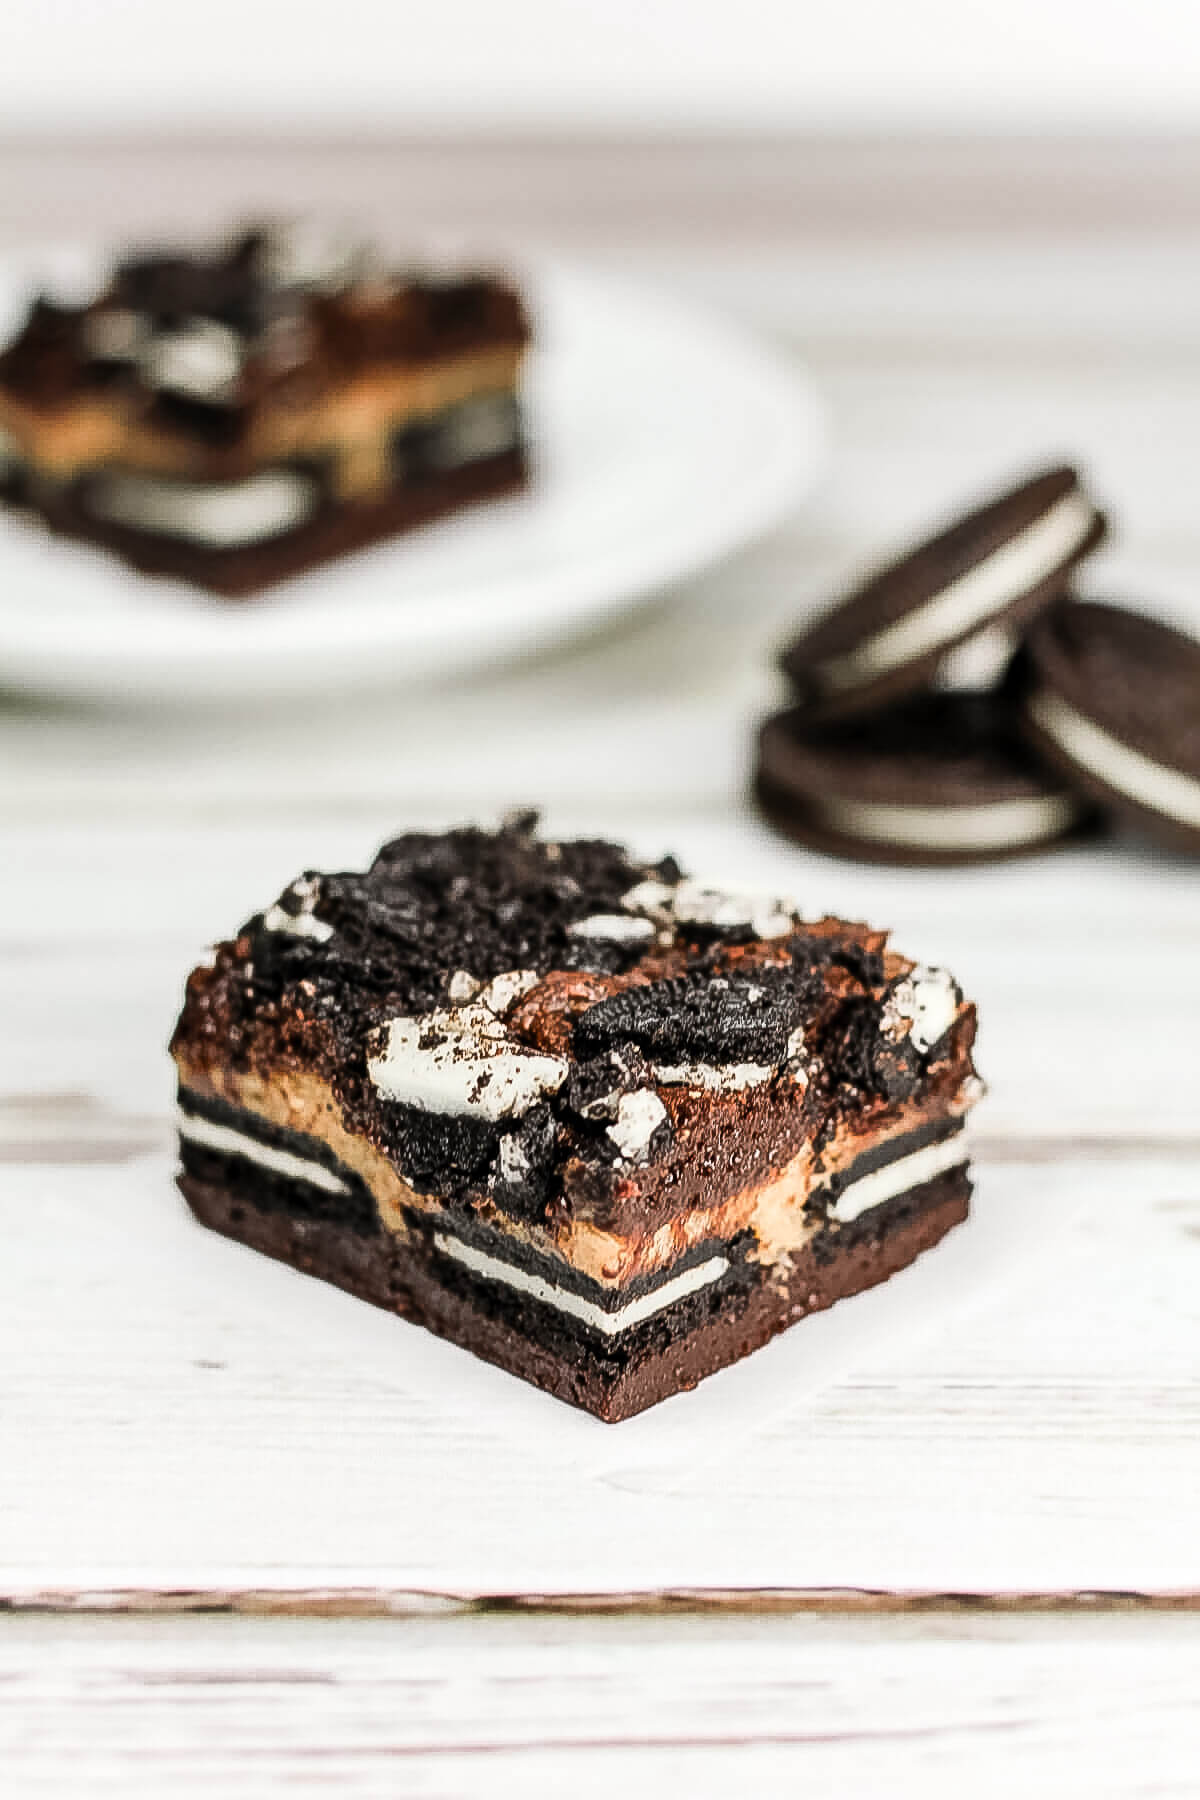 These peanut butter cheesecake Oreo brownies have five layers of brownie, cheesecake, and cookies. And they promise to be out of this world good!